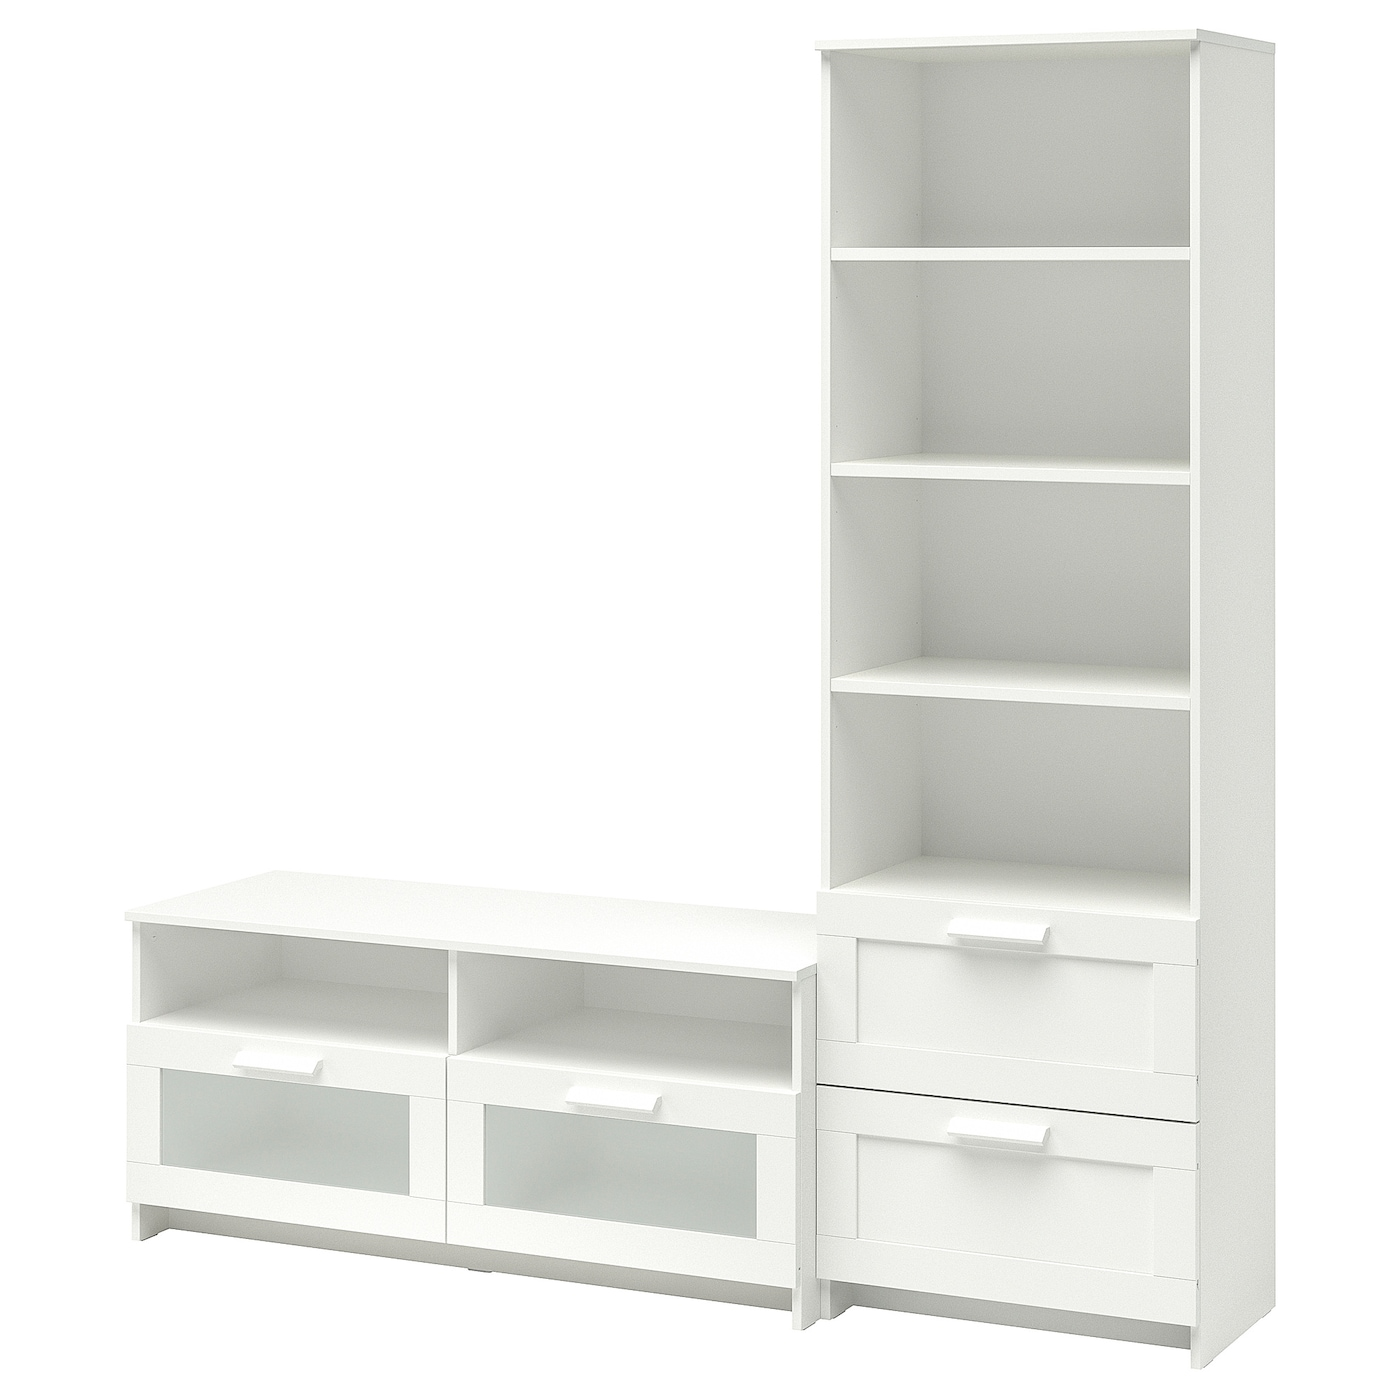 Ikea brimnes tv storage combination adjustable shelves so you can customise your storage as needed